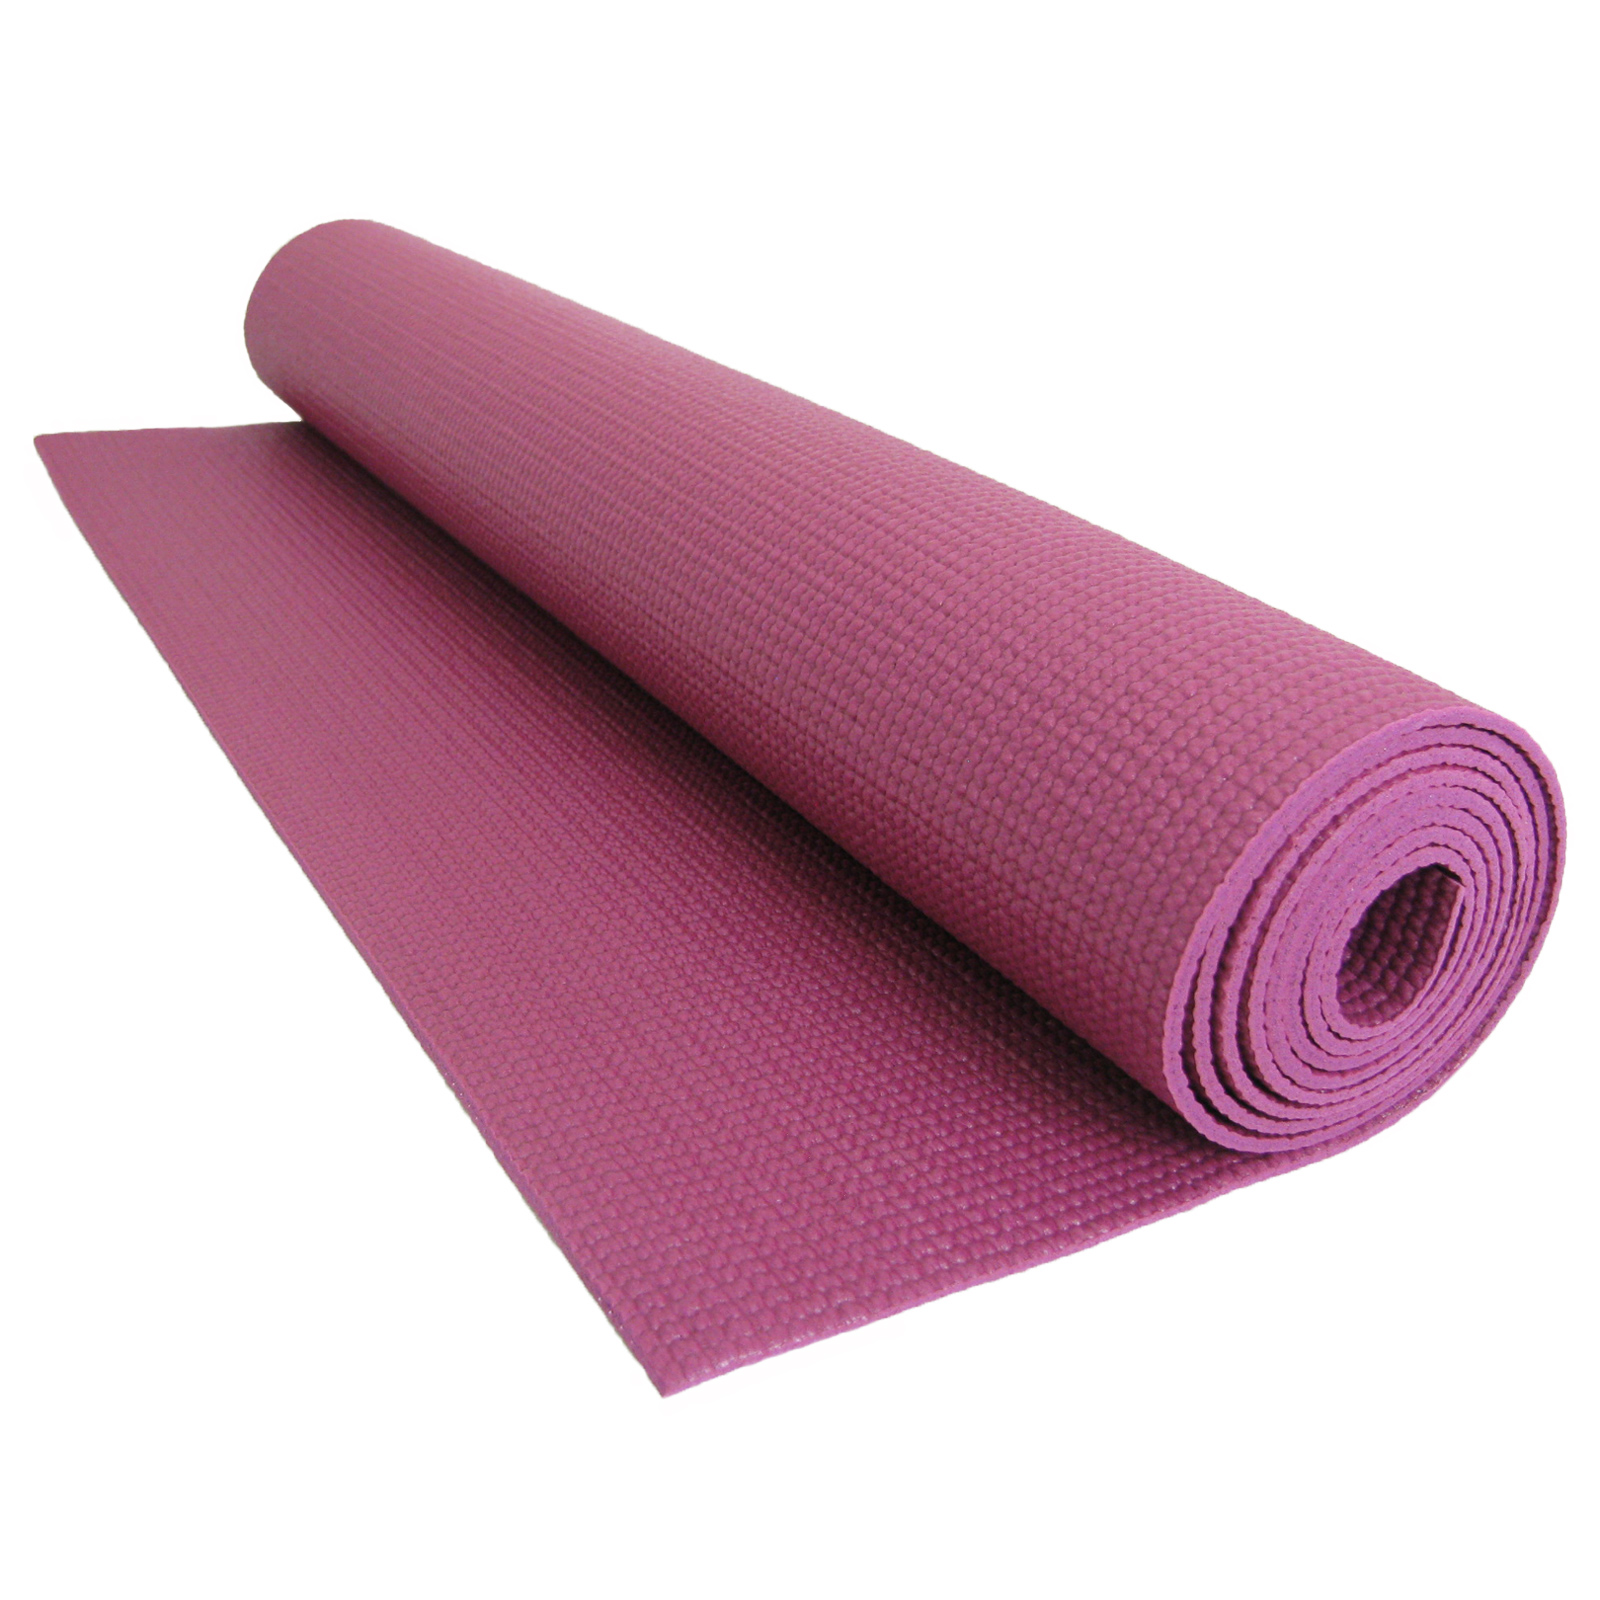 Floor mats for gym - Yoga Exercise Mat Fitness Physio Pilates Gym Non